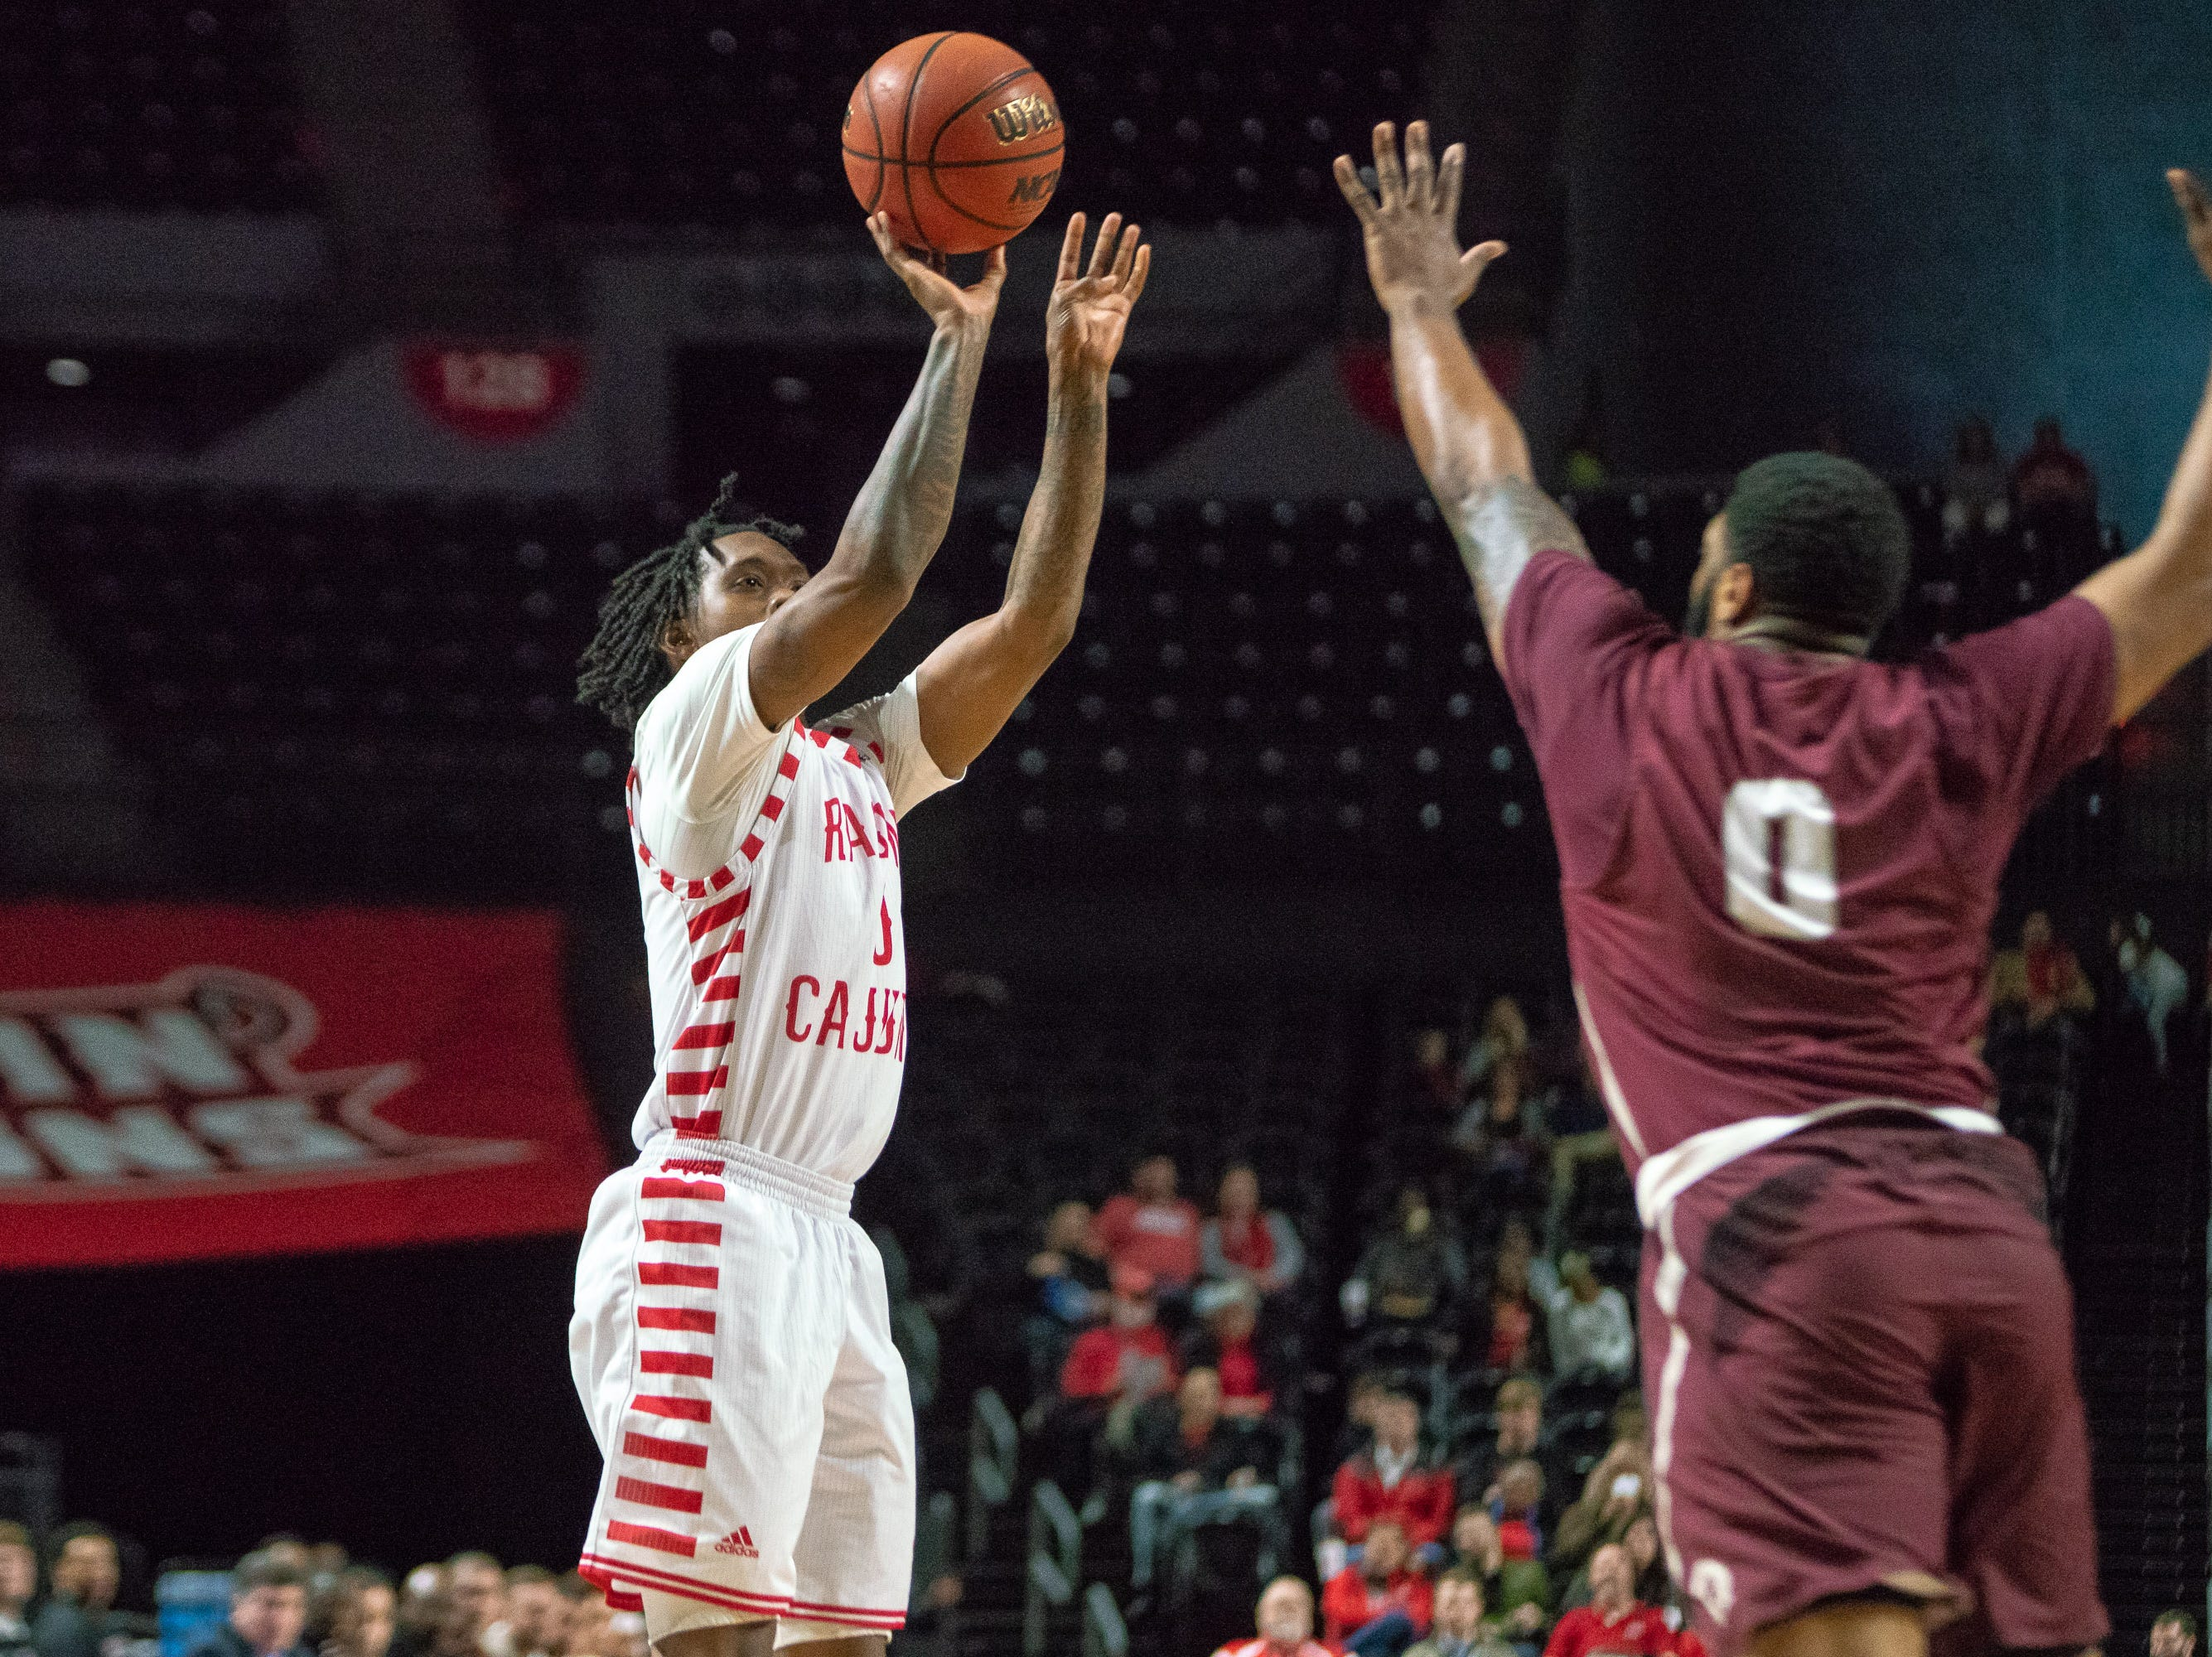 UL's Cedric Russell shoots to score as the Ragin' Cajuns take on the Little Rock Trojans at the Cajundome on January 5, 2019.